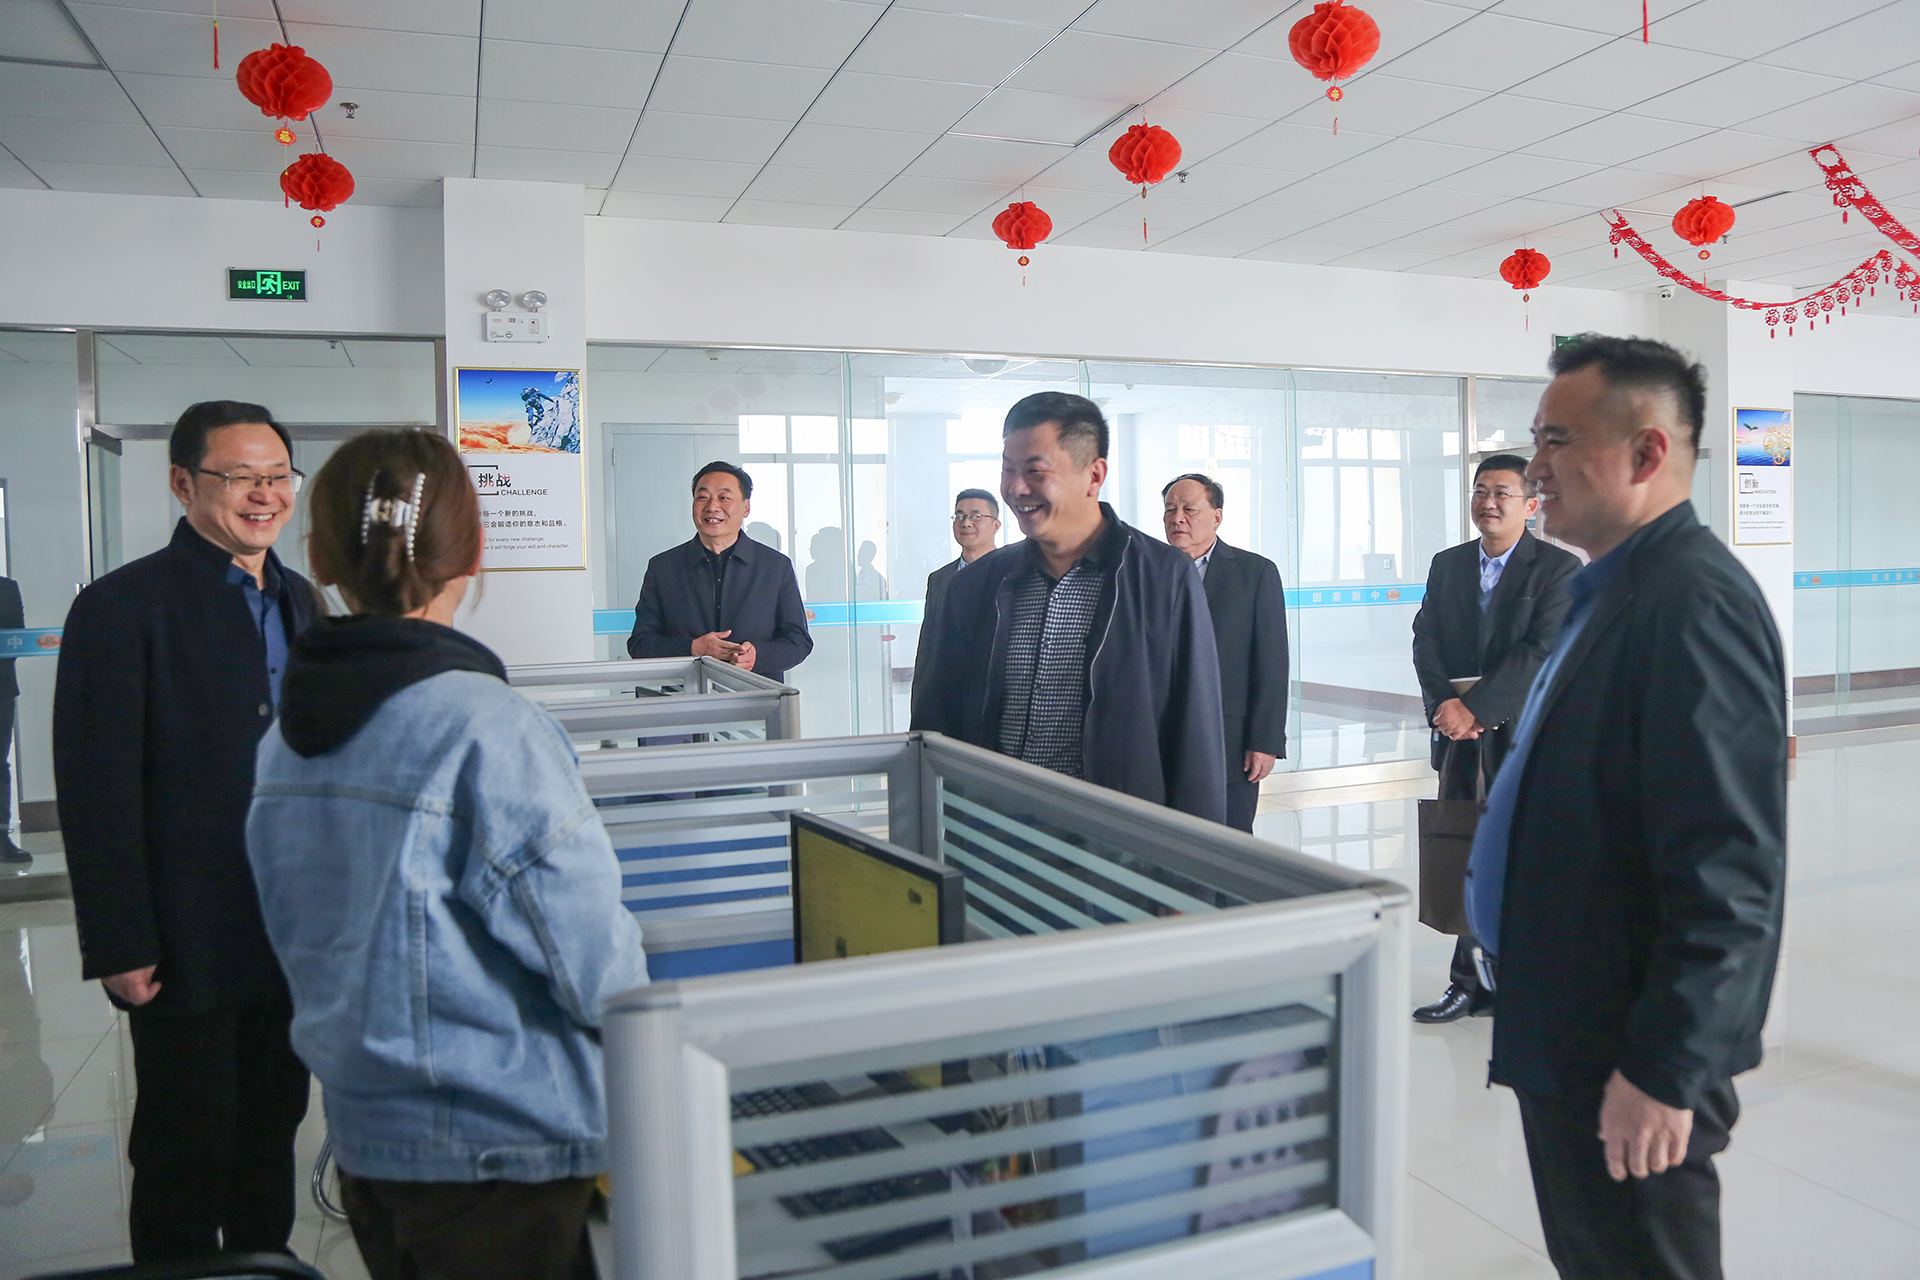 Warmly Welcome The Leaders Of Jining Technician College To Visit China Coal Group For Inspection And Cooperation